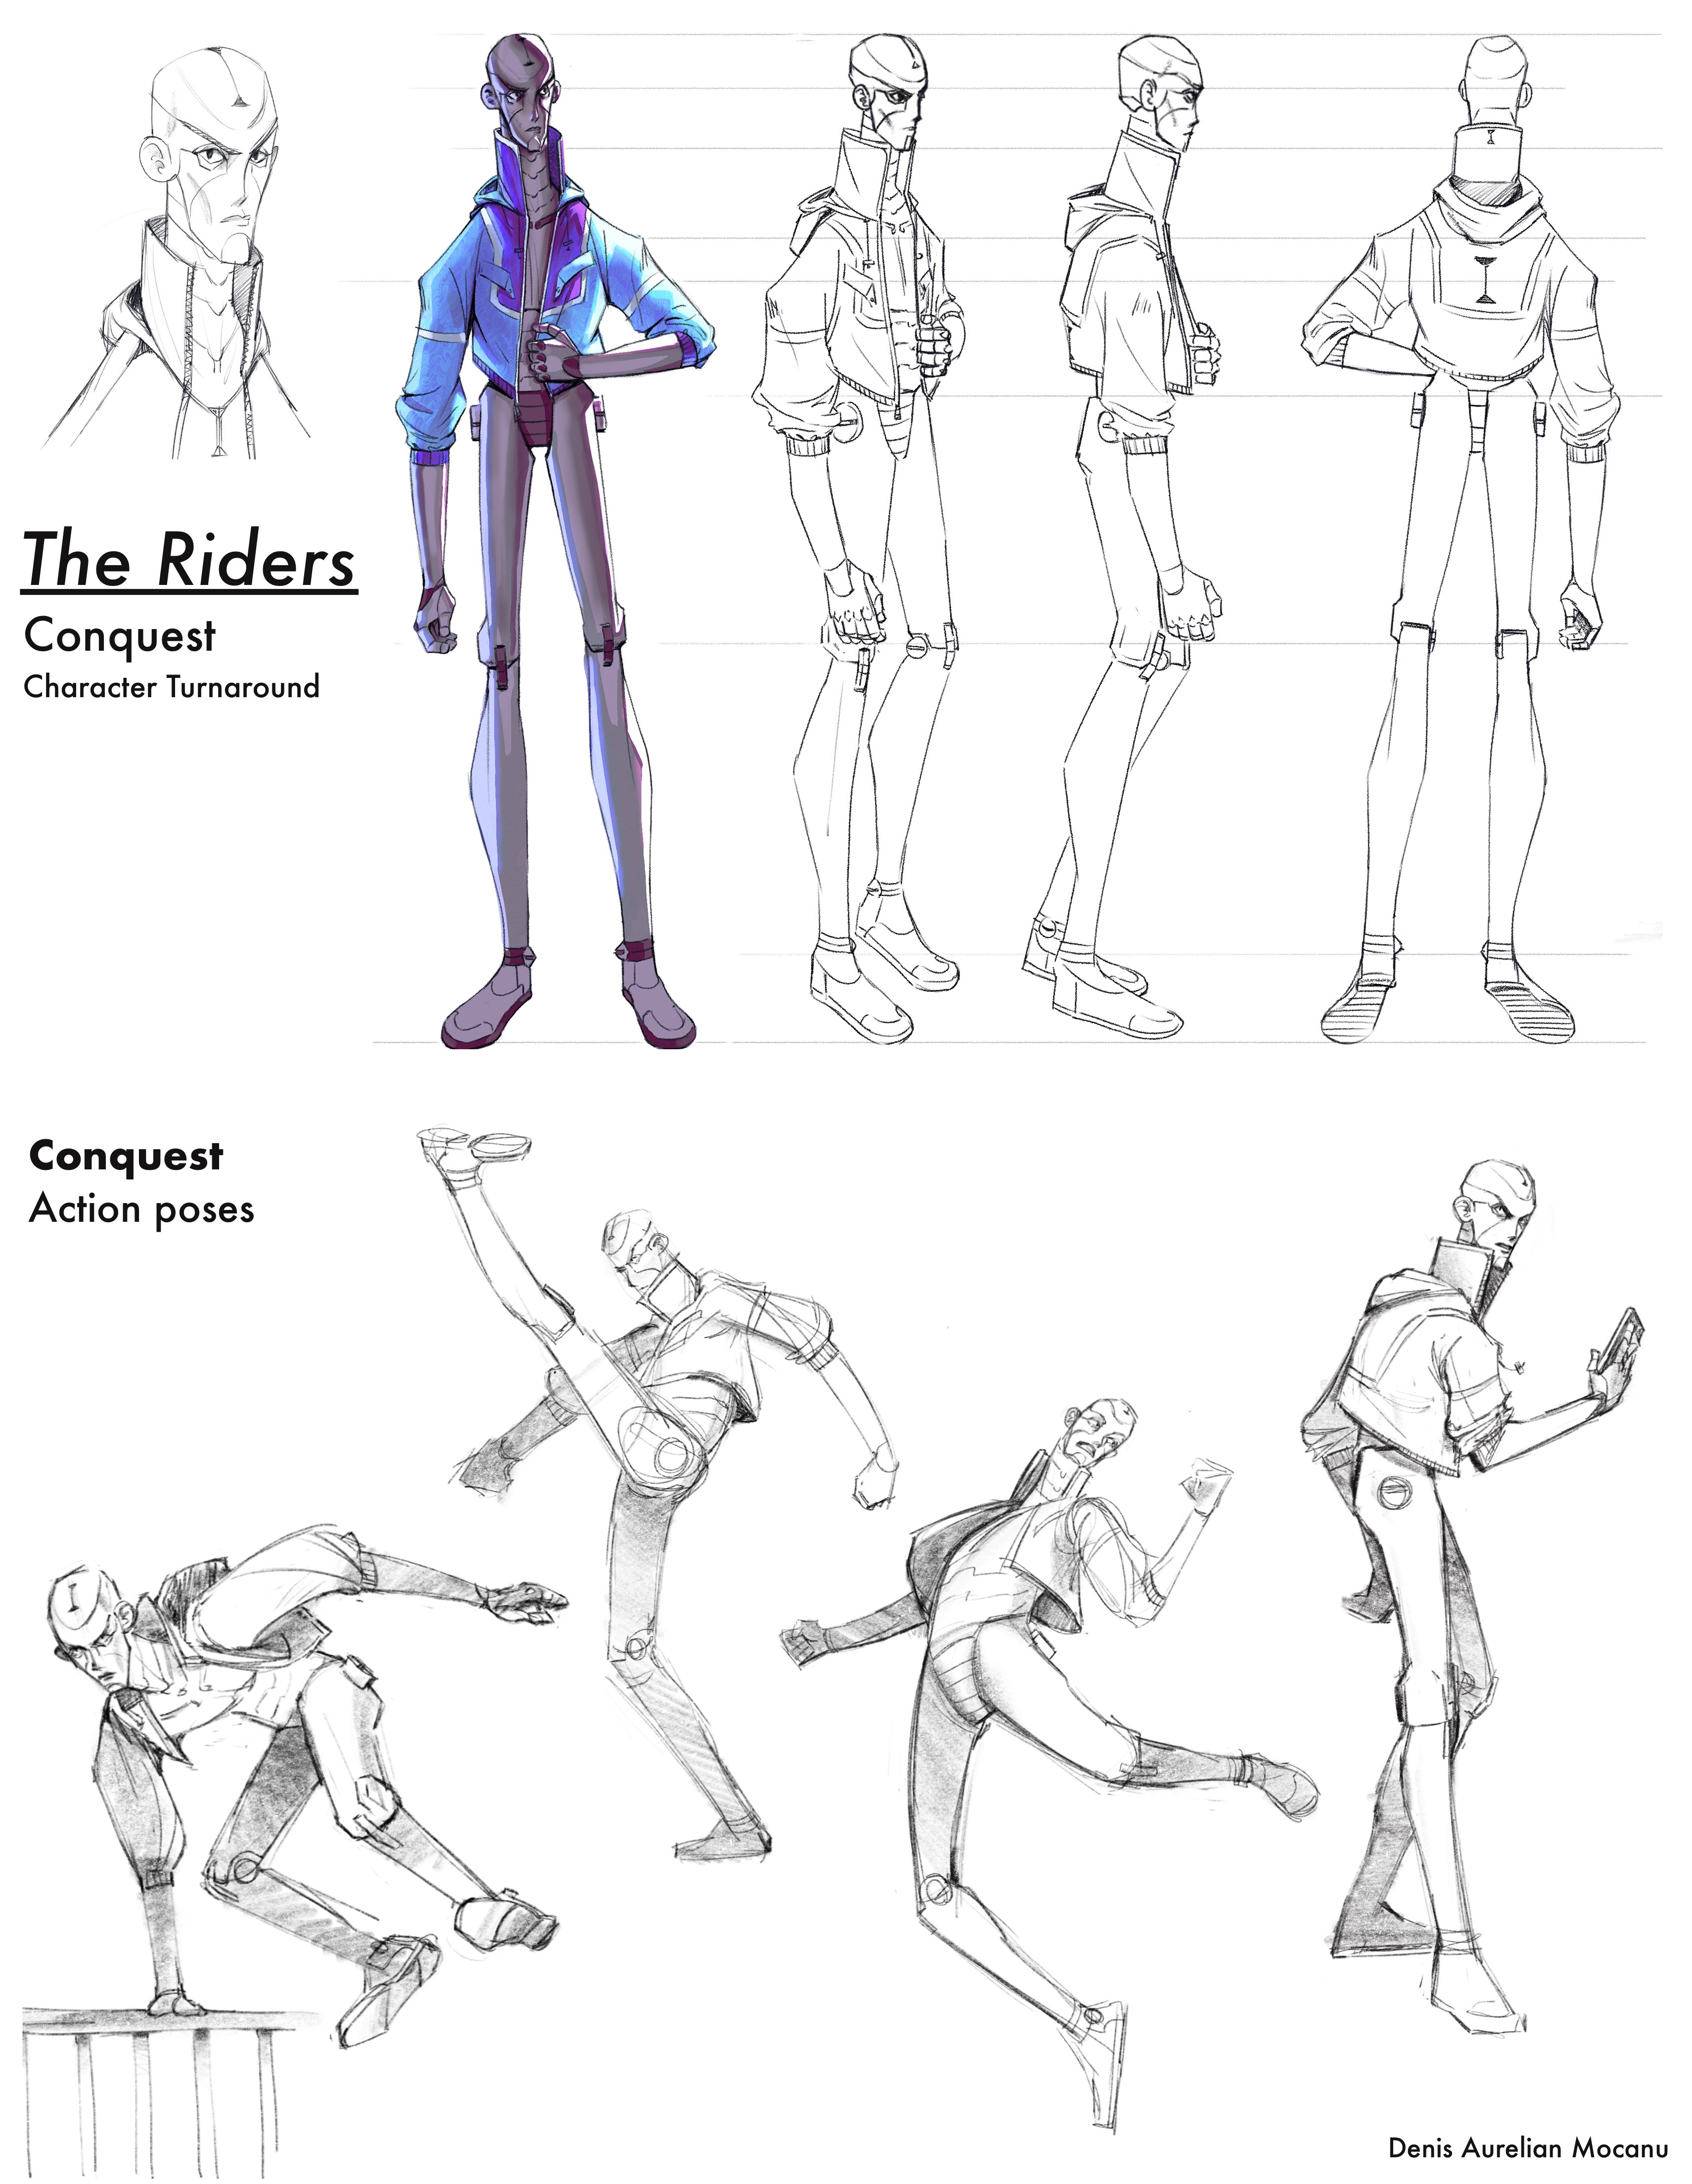 Main Pose colored + action poses